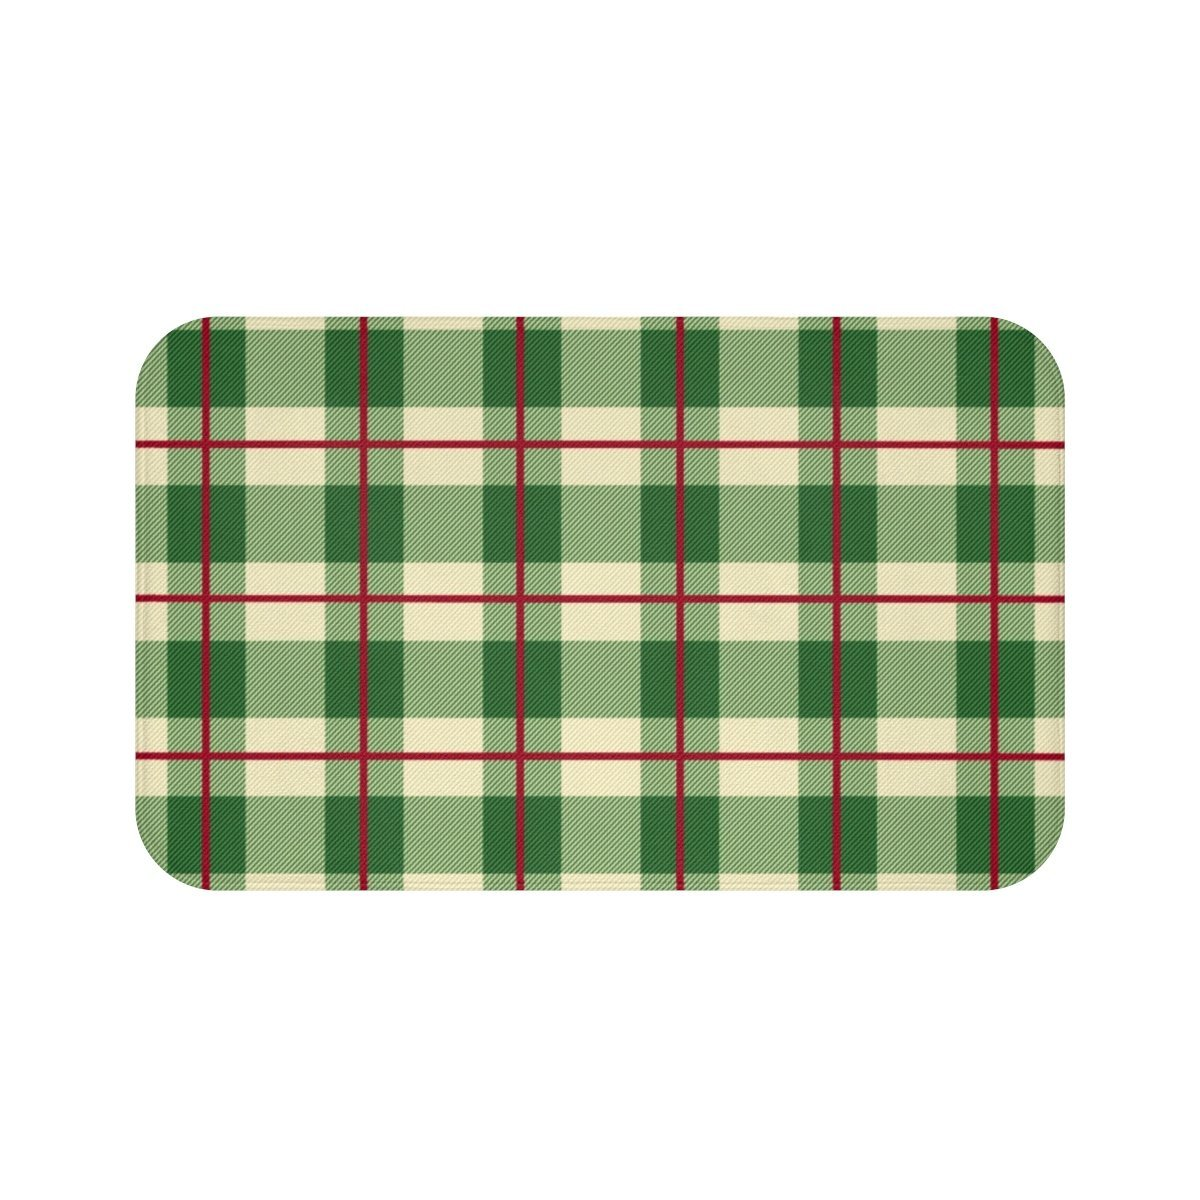 Seasonal & Holiday Christmas Plaid Bath Mat-Bath - Bath Linens - Bath Mats-Maison d'Elite-Très Elite